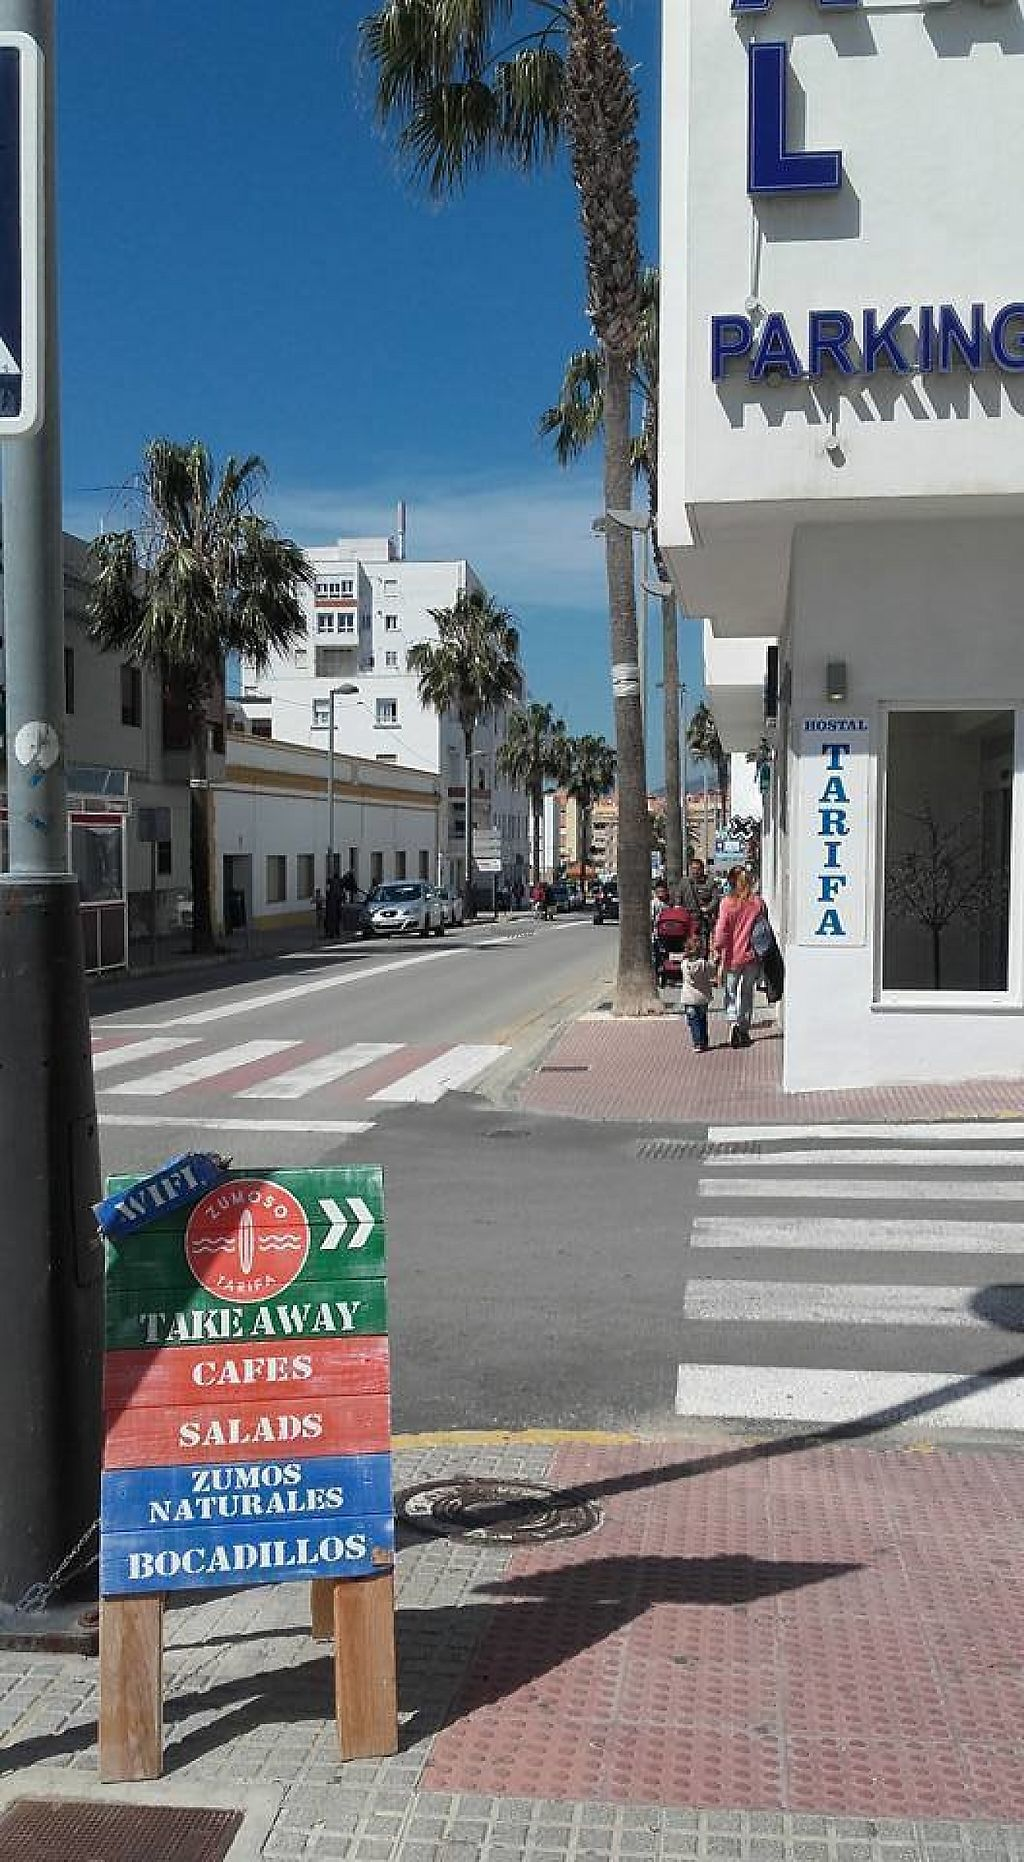 """Photo of Zumoso Bar Tarifa  by <a href=""""/members/profile/zumosotarifa"""">zumosotarifa</a> <br/>Fresh juices, creamy coffee, homemade cakes, sandwiches and salads for take away.  Calle Canovas del Castillo 4 11380 Tarifa 956 62 75 93  <br/> November 14, 2016  - <a href='/contact/abuse/image/82633/190076'>Report</a>"""